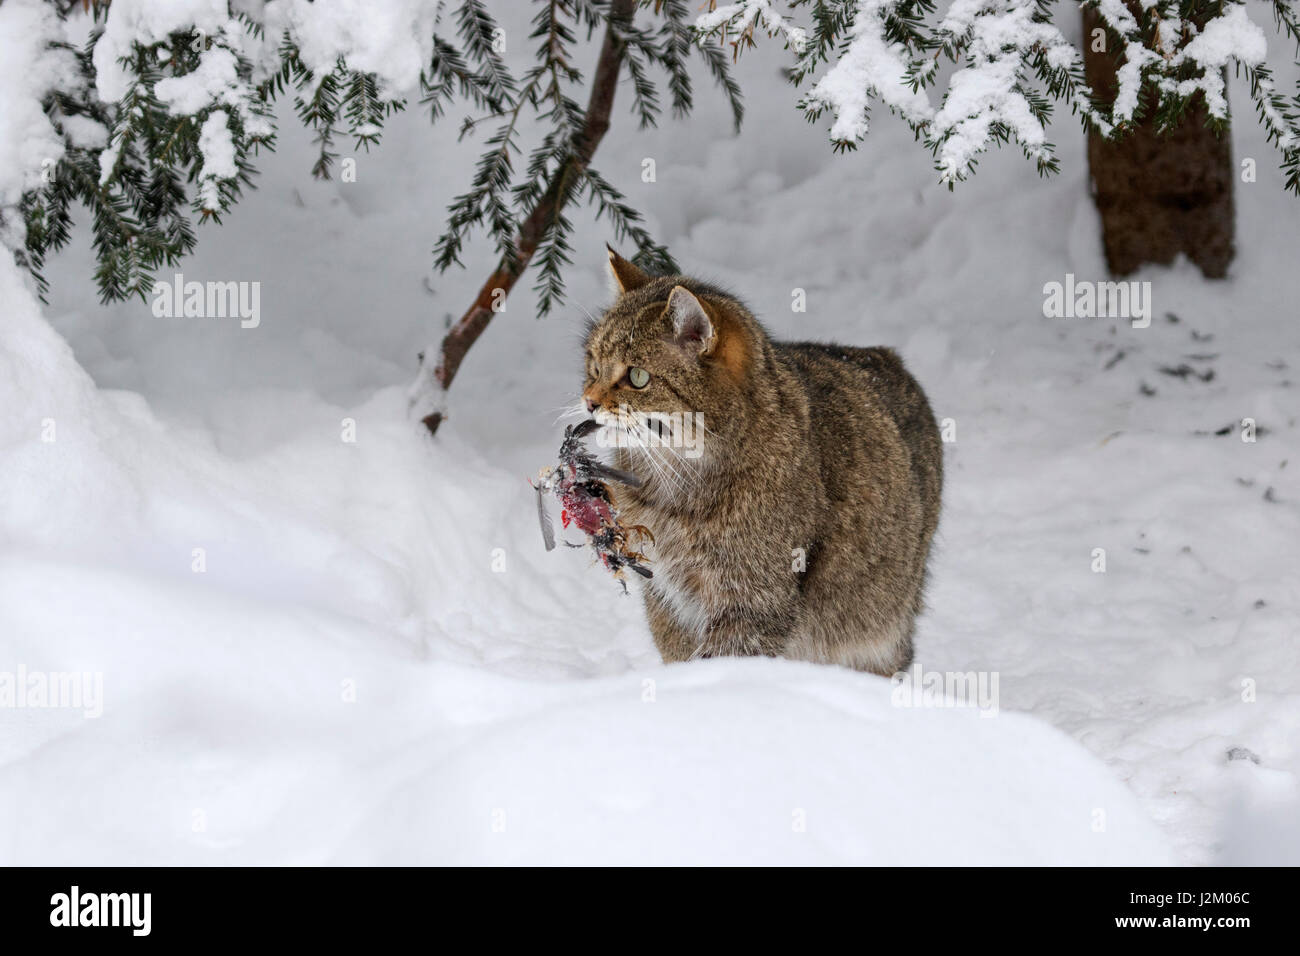 European wild cat (Felis silvestris silvestris) with bird prey in mouth in the snow in winter - Stock Image